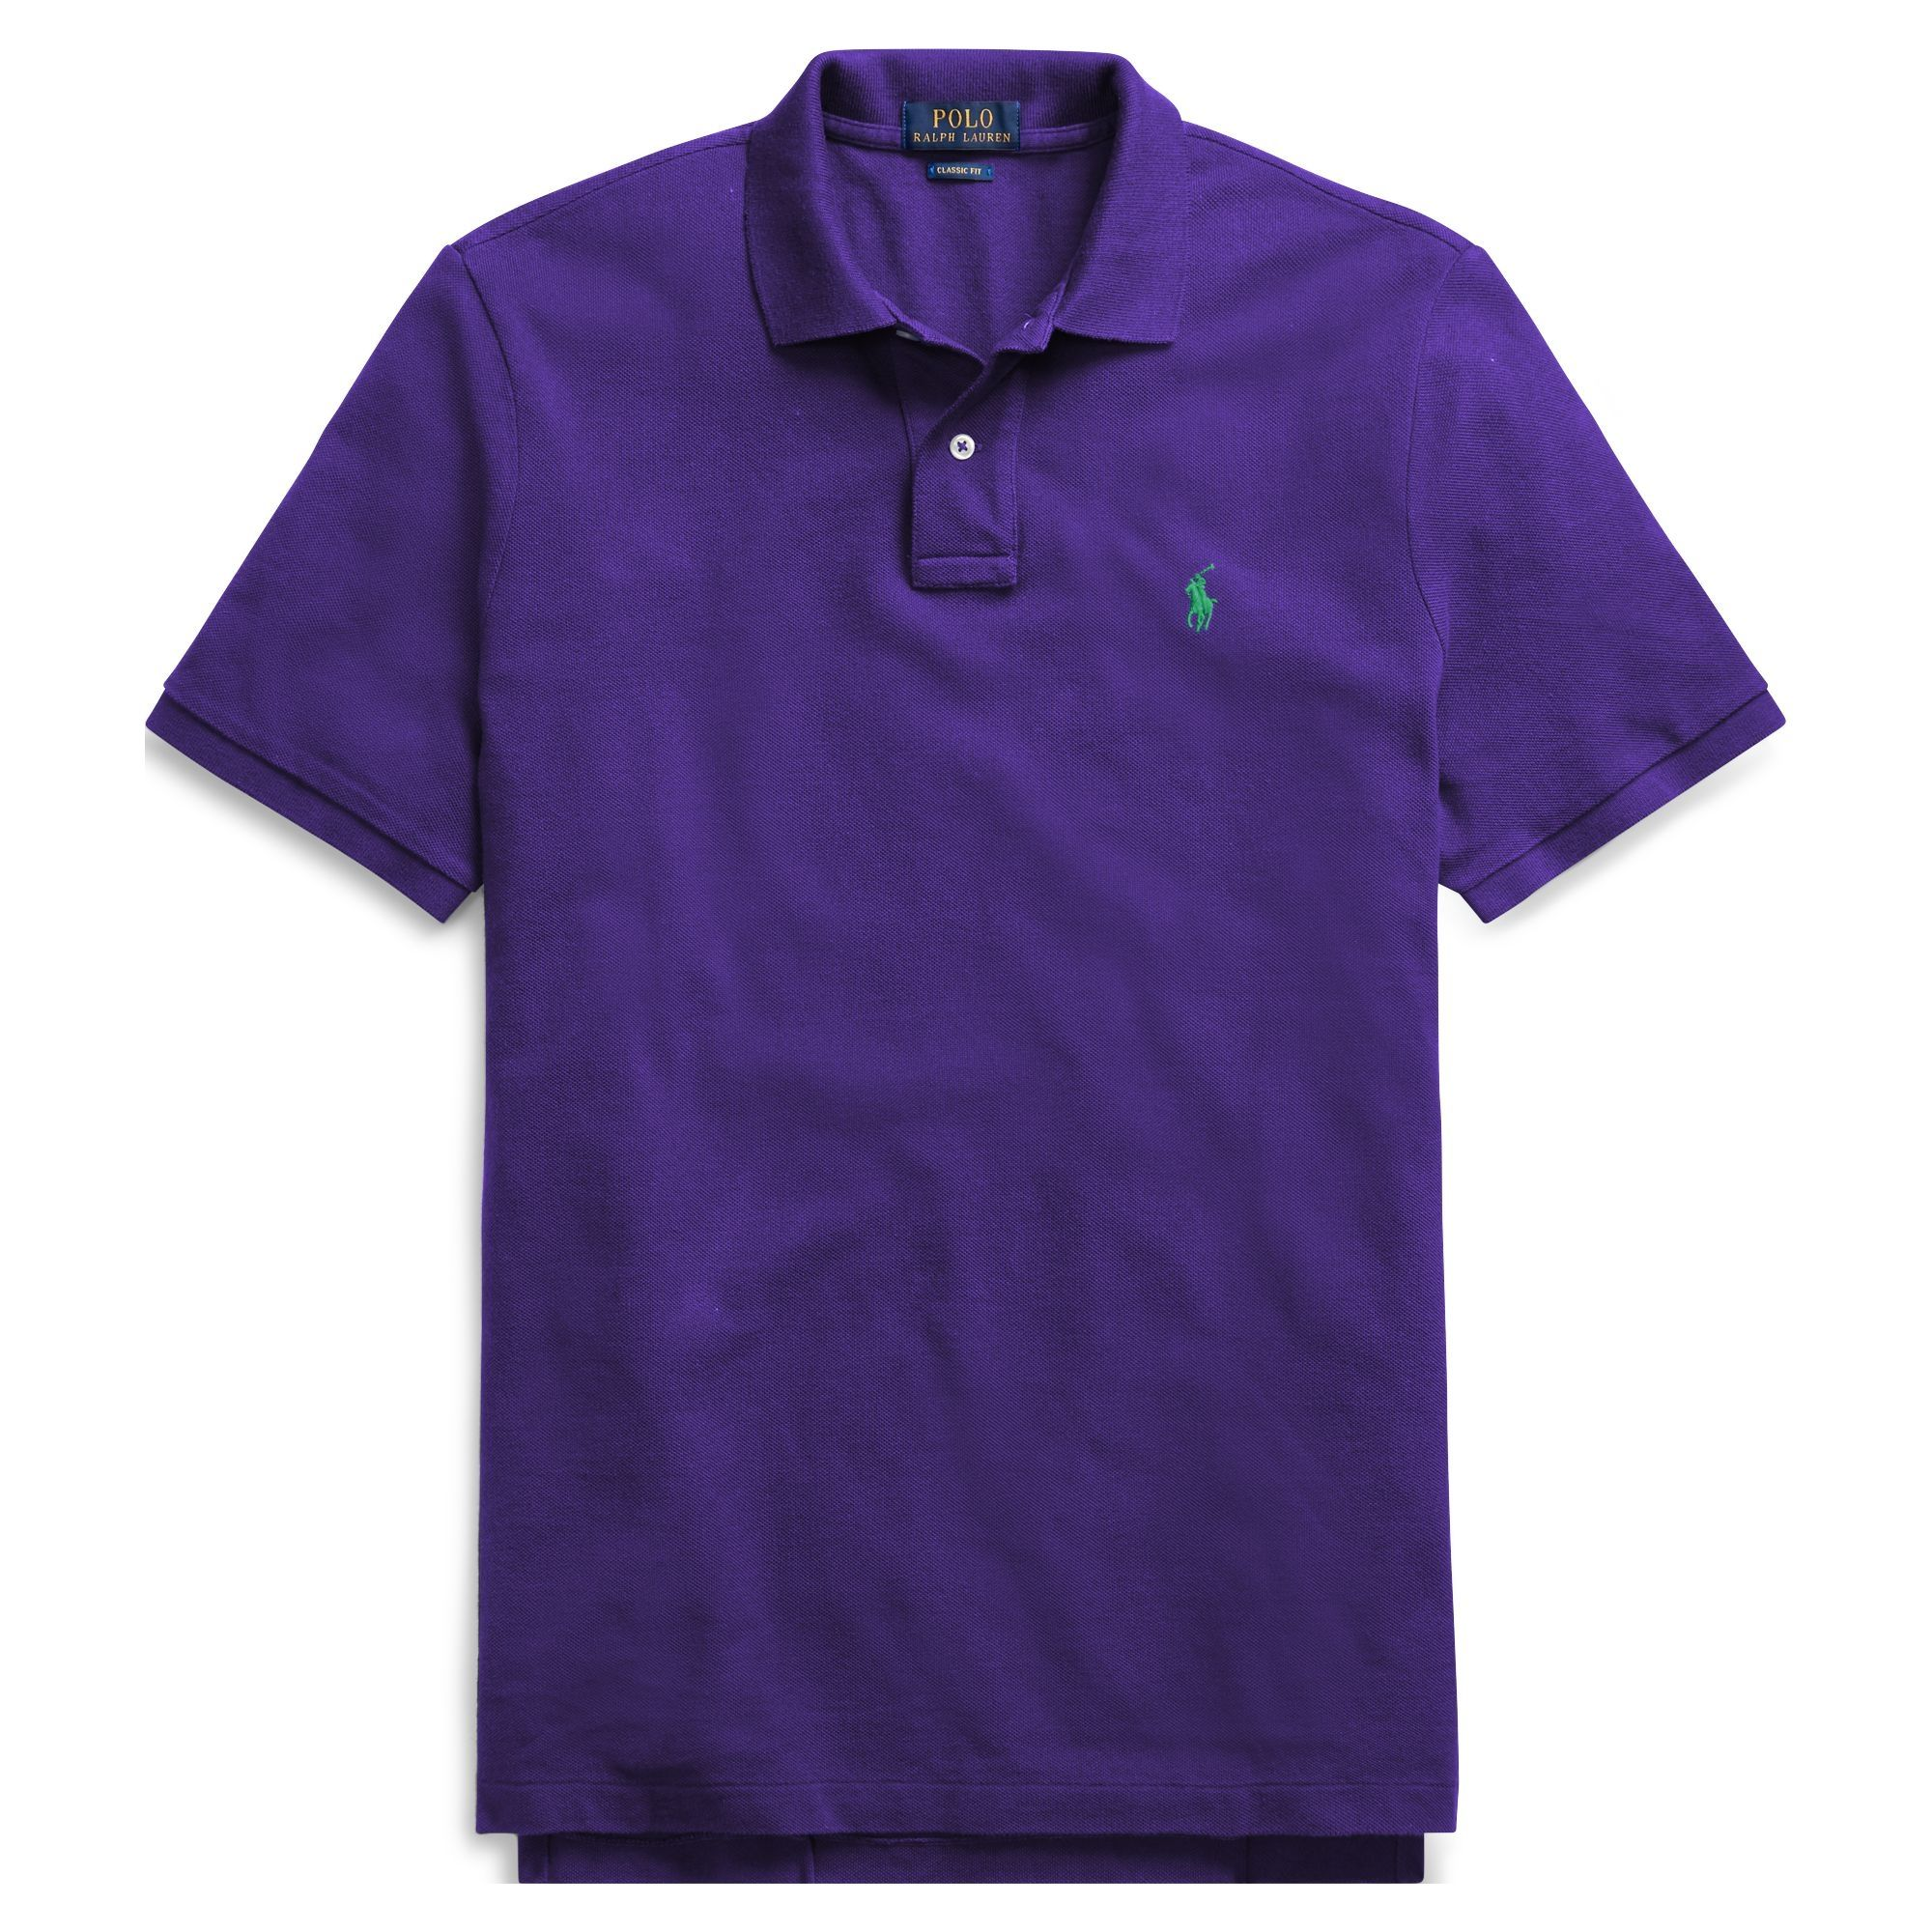 29686086e Ralph Lauren Classic Fit Mesh Polo Shirt Price in Egypt